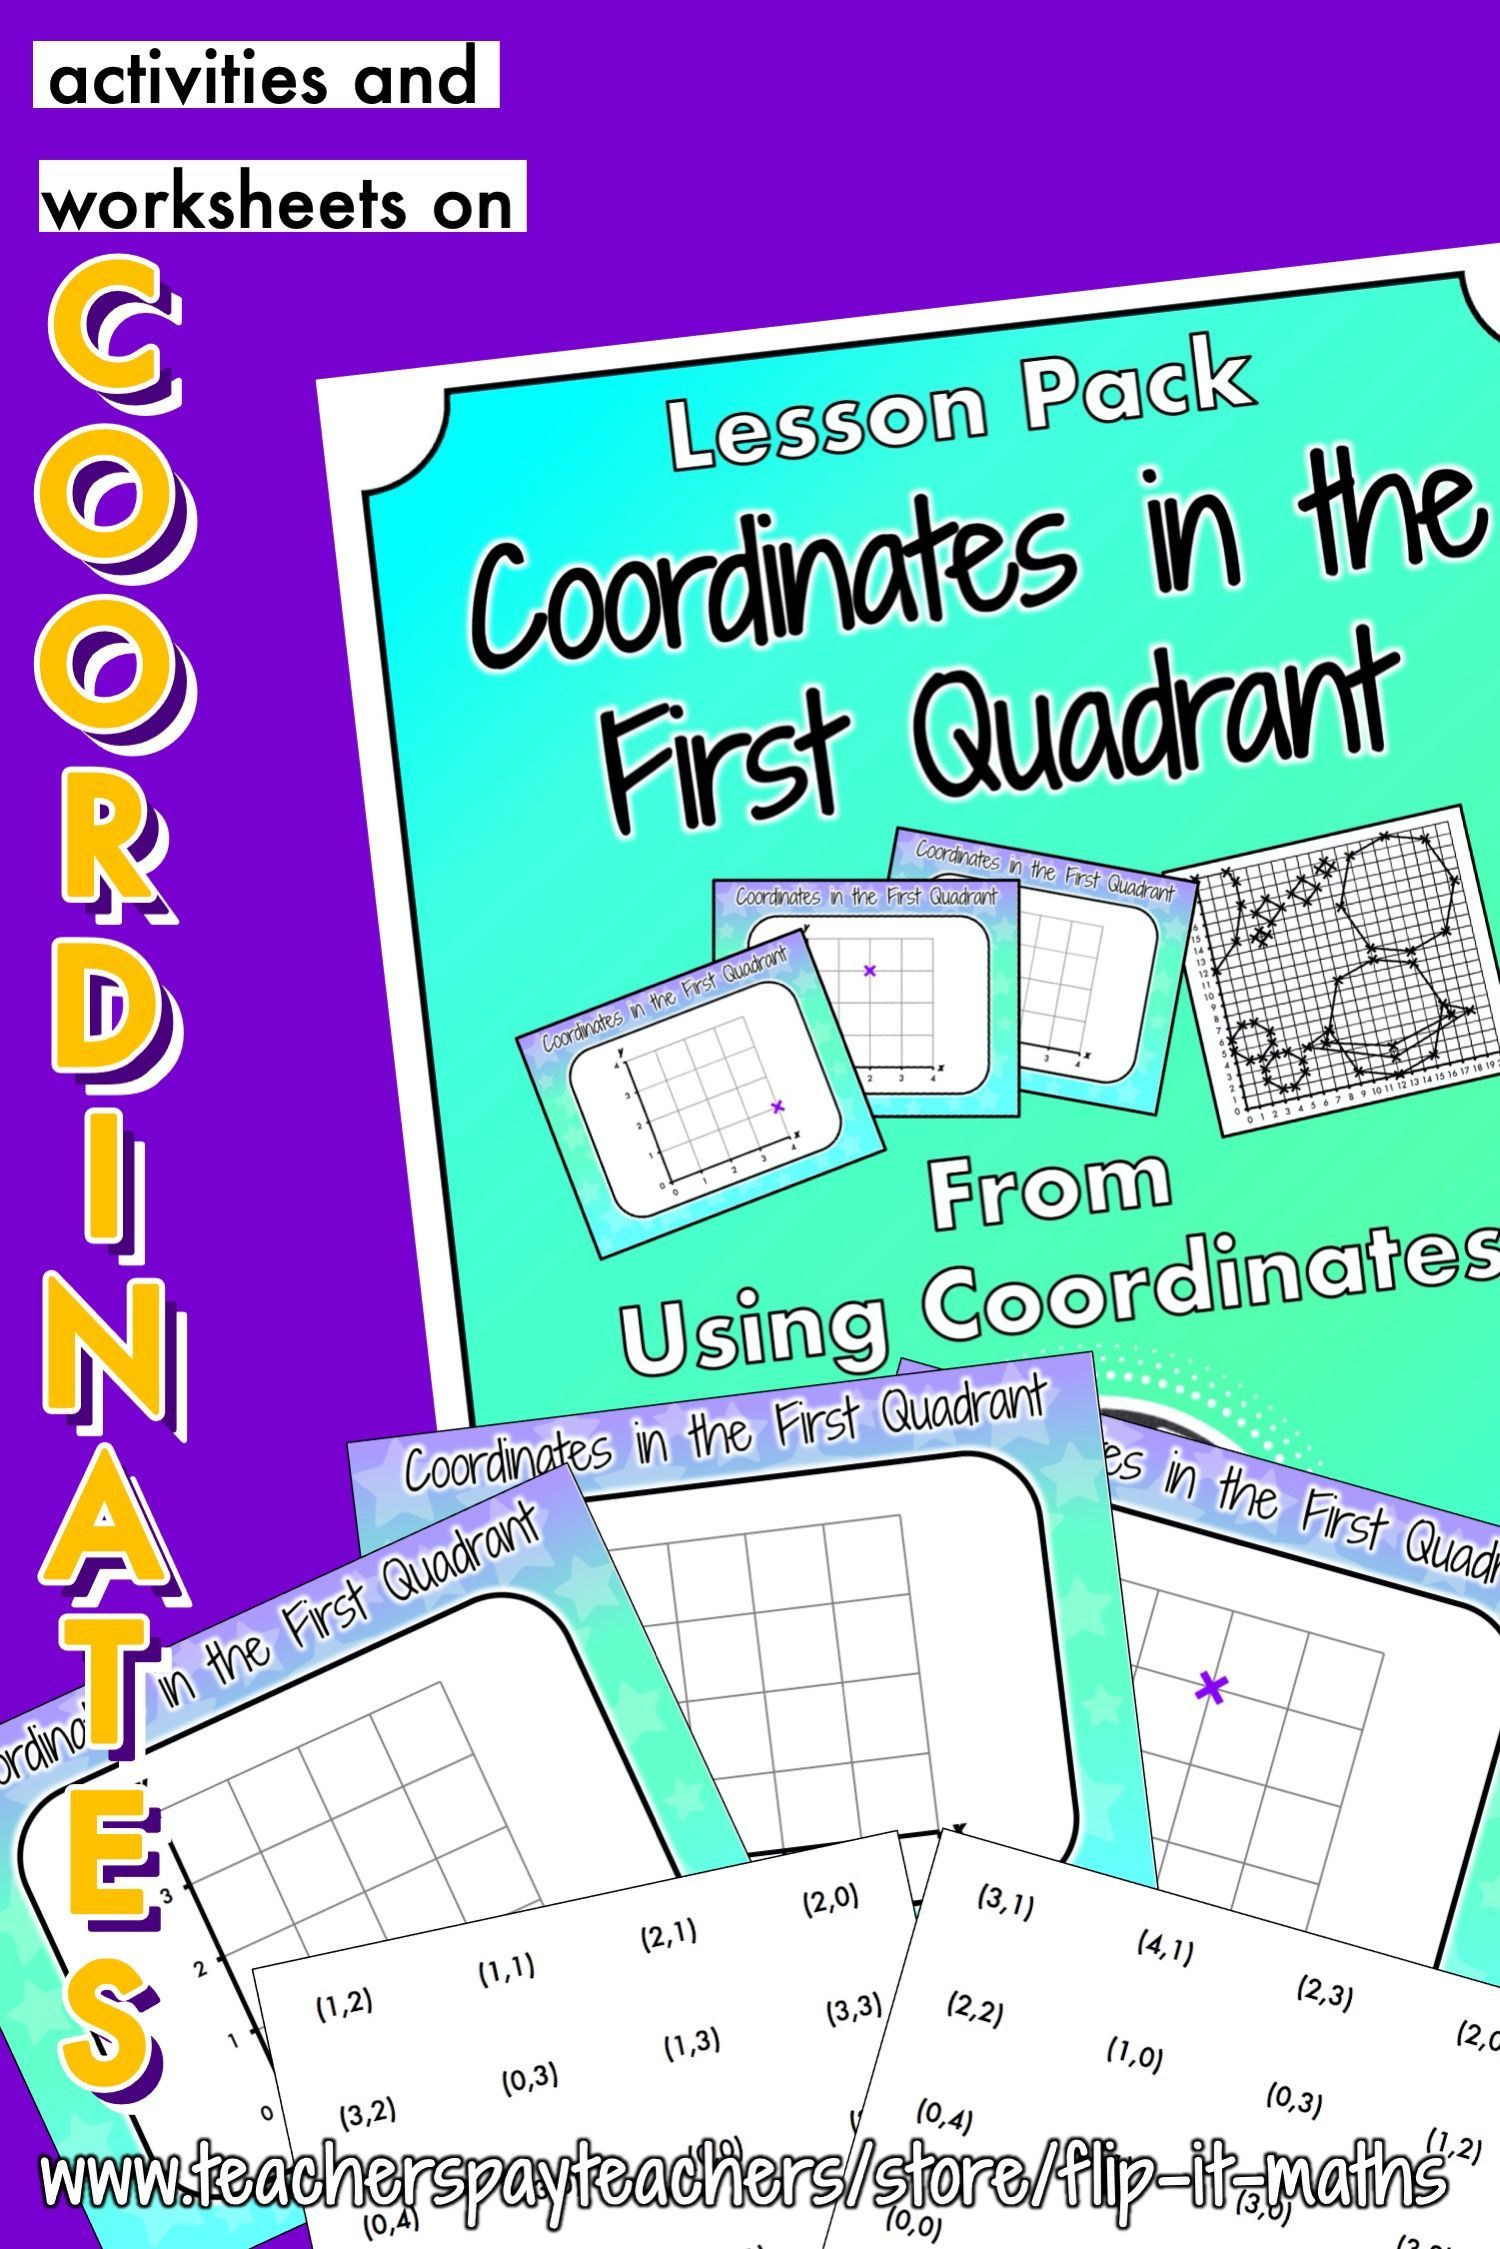 Coordinates In The First Quadrant In